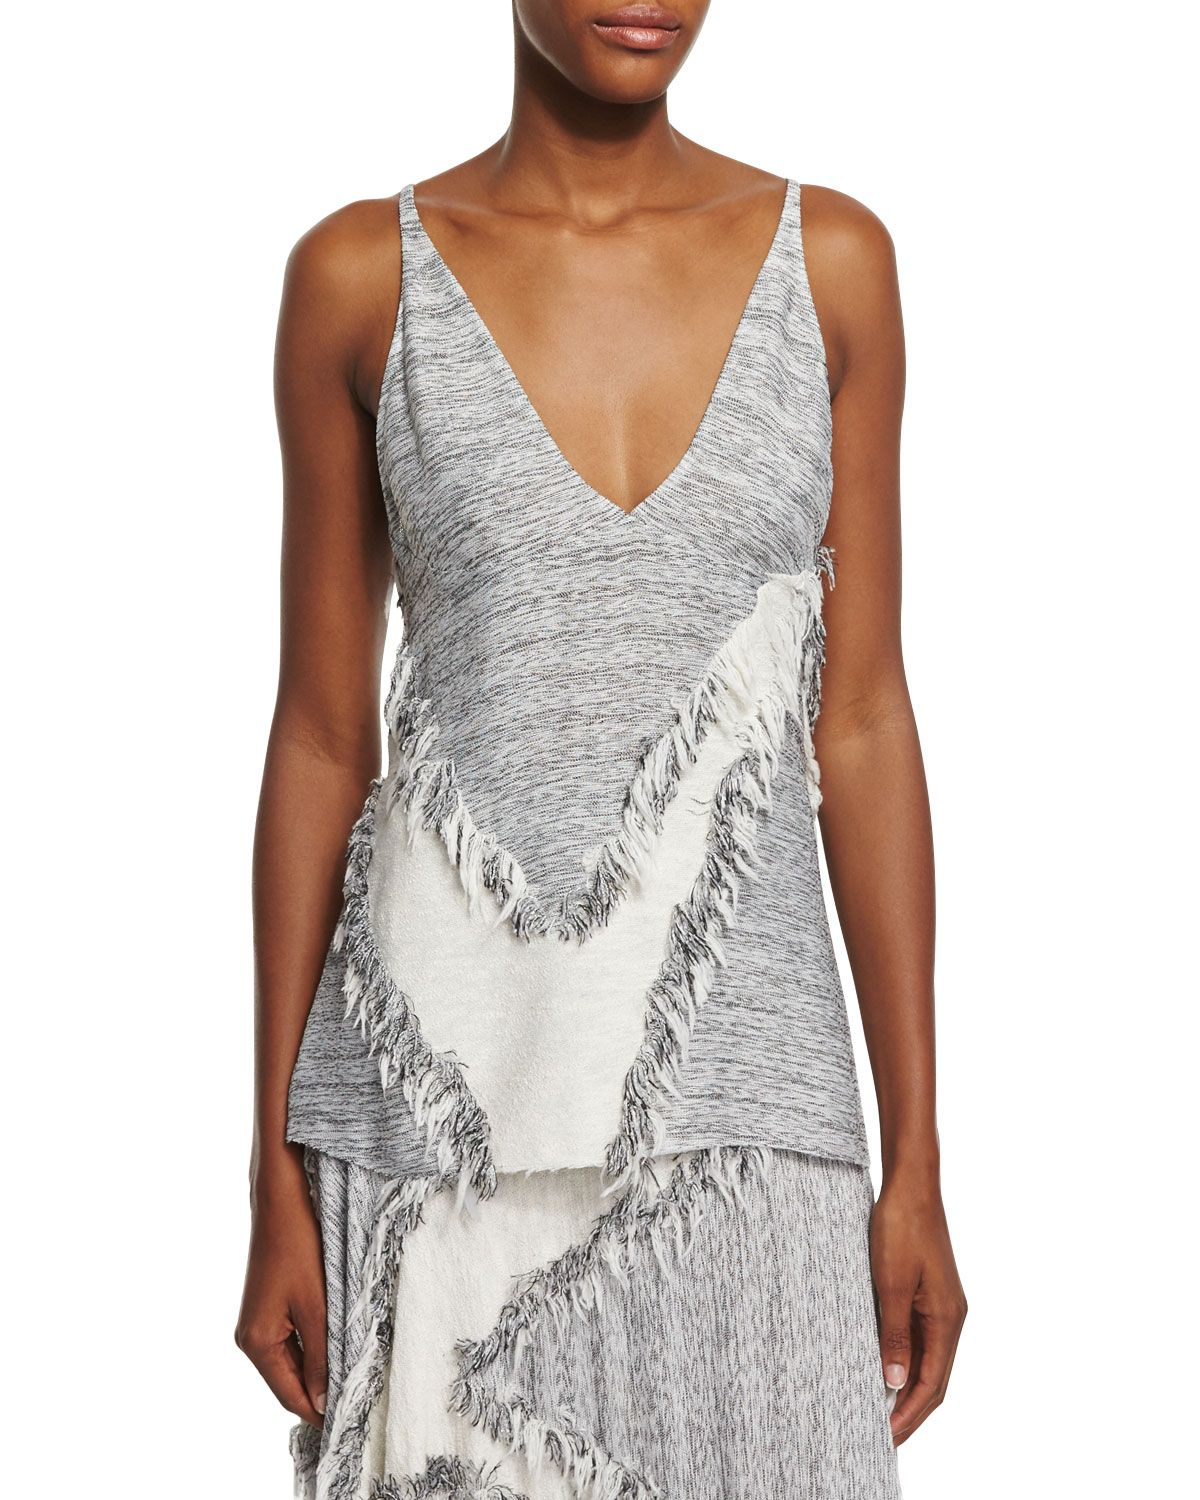 Hopsack Fringe-Trim Sleeveless Blouse, Gray Melange, Size: 38 IT (2 US), Grey Melange - Derek Lam